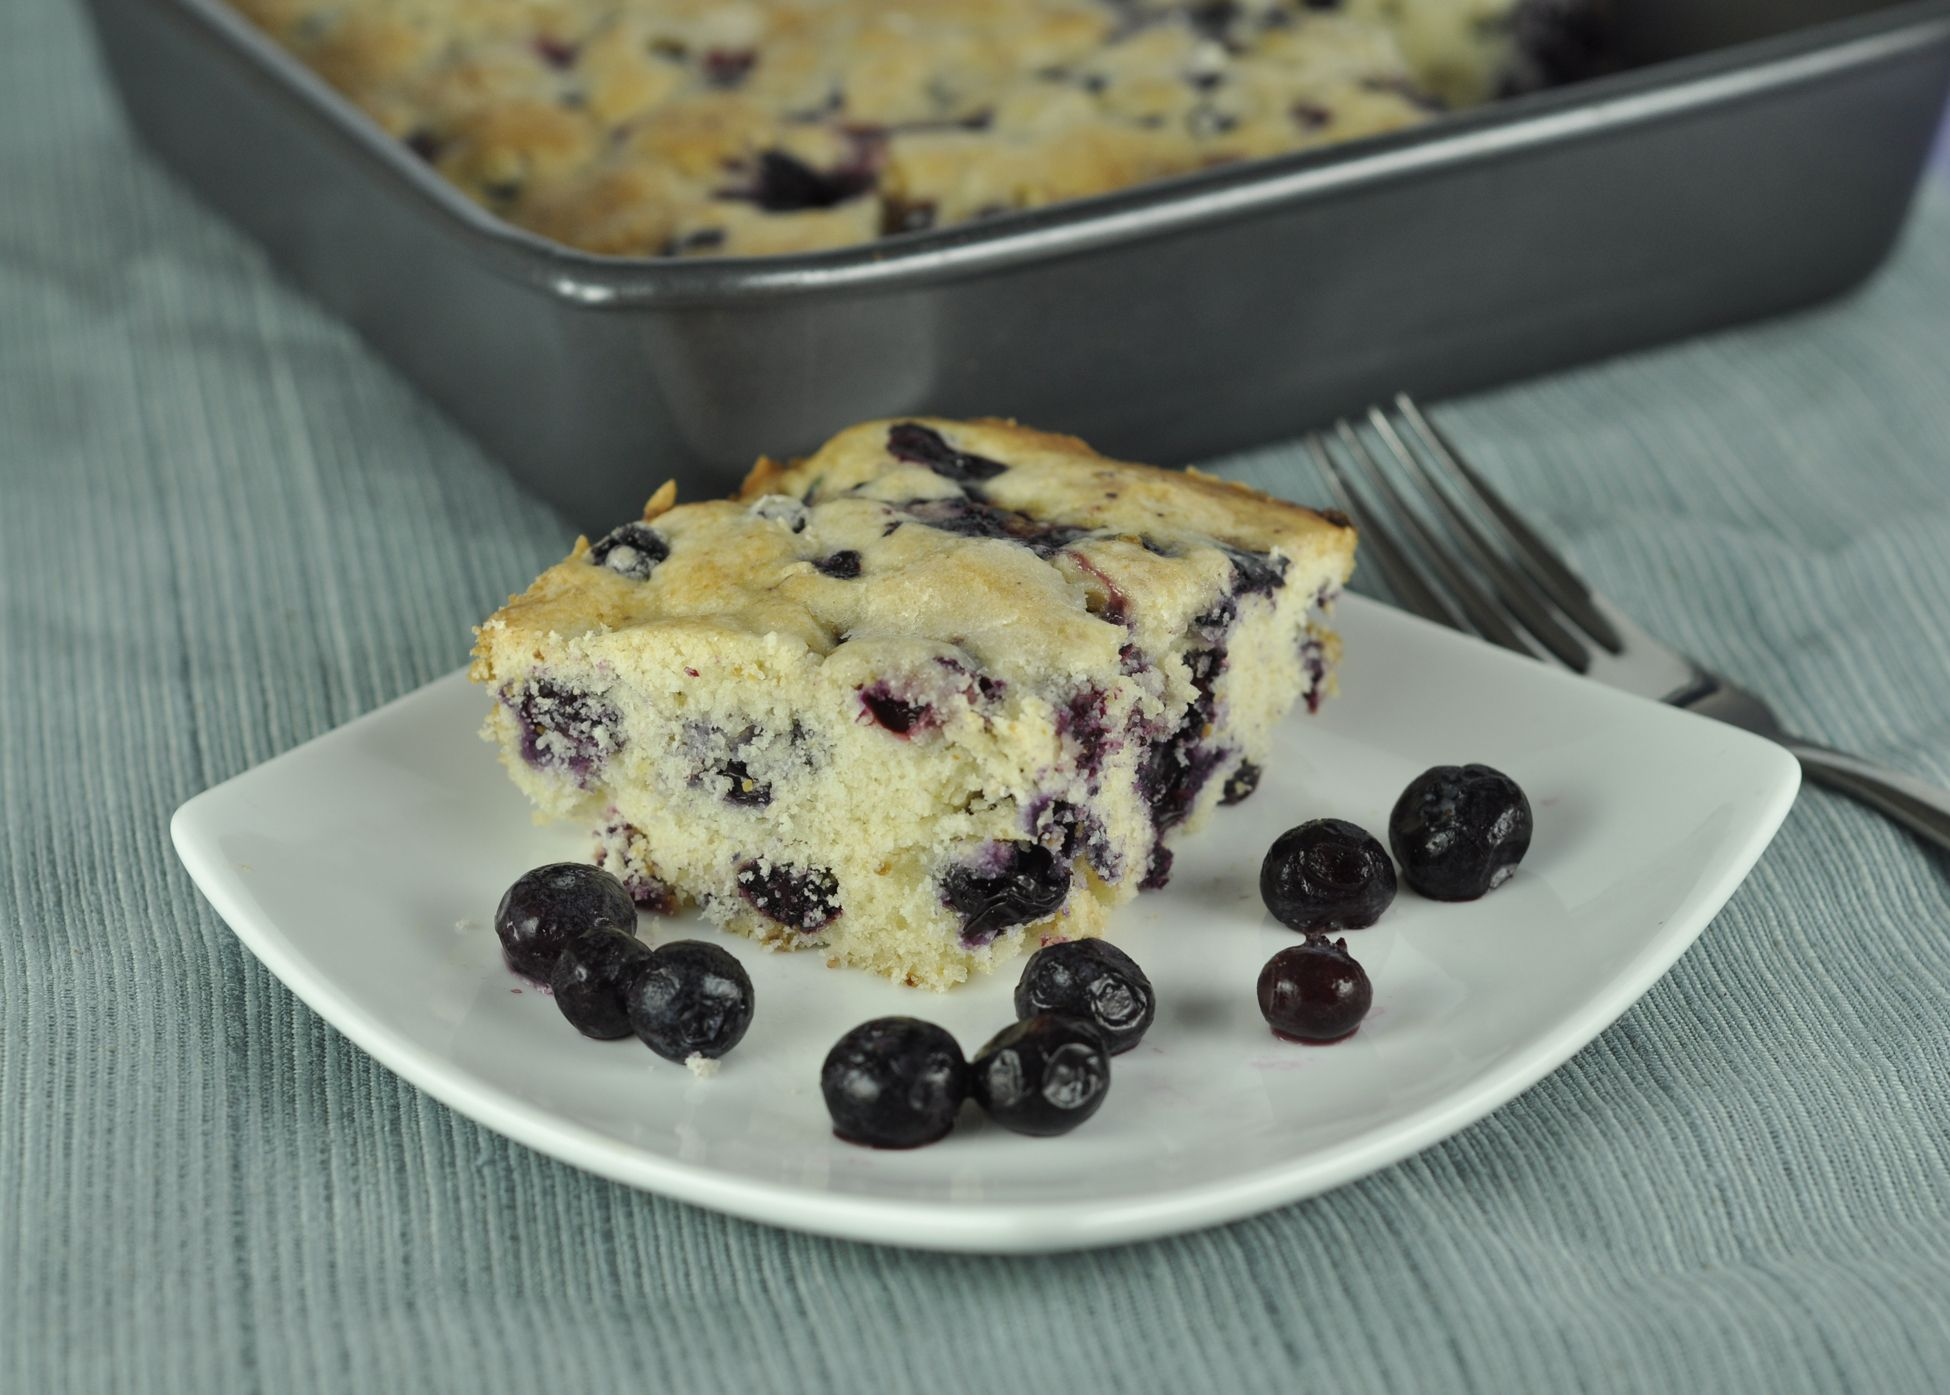 Buttermilk-Blueberry Breakfast Cake | Wishes and Dishes